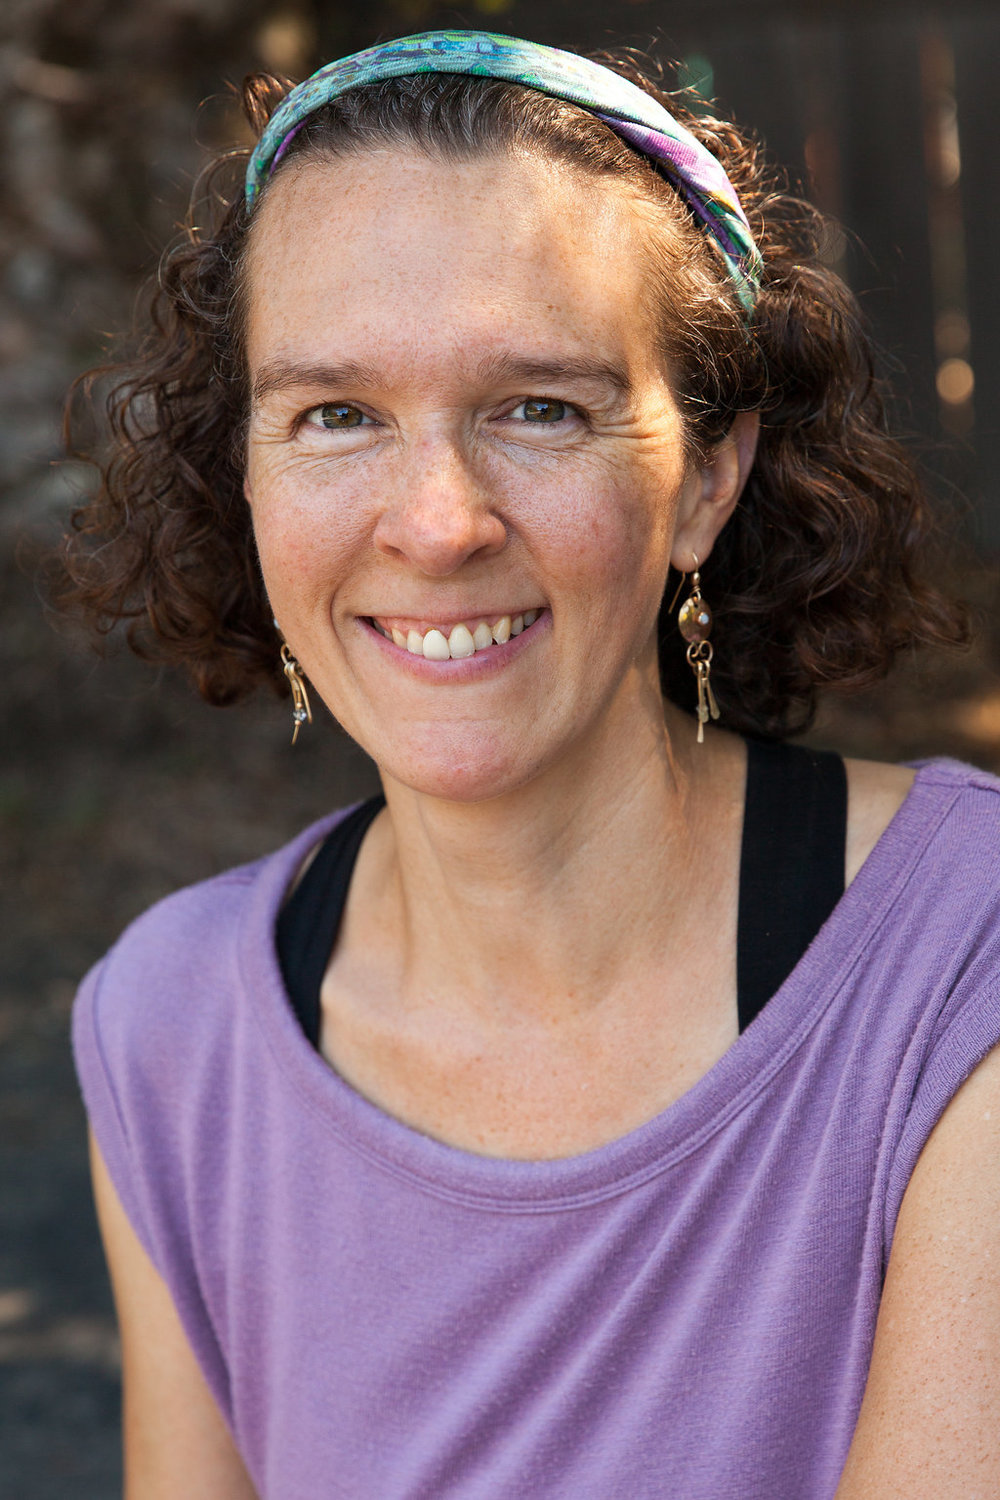 Ceilia Gomez - Co-Lead Kindergarten TeacherCeilia Gomez grew up in the Texas hill country and moved to the Bay Area in 1999. She began the Waldorf Teacher Training in 2001 and started working in the kindergarten at Marin Waldorf School in 2004. She has worked with parent-toddler groups, preschool, and kindergarten aged children over the last 14 years, and received a BA in Early Childhood Studies from Sonoma State University. Ceilia is also a mother, an artist, enjoys gardening, cooking, and traveling, and is a certified Nutrition Educator through Bauman College. She currently lives in Novato with her husband and son. The bilingual Waldorf inspired program at Hummingbirds Nest provides an ideal setting for her to share her enthusiasm for the education of young children through nature and the arts.